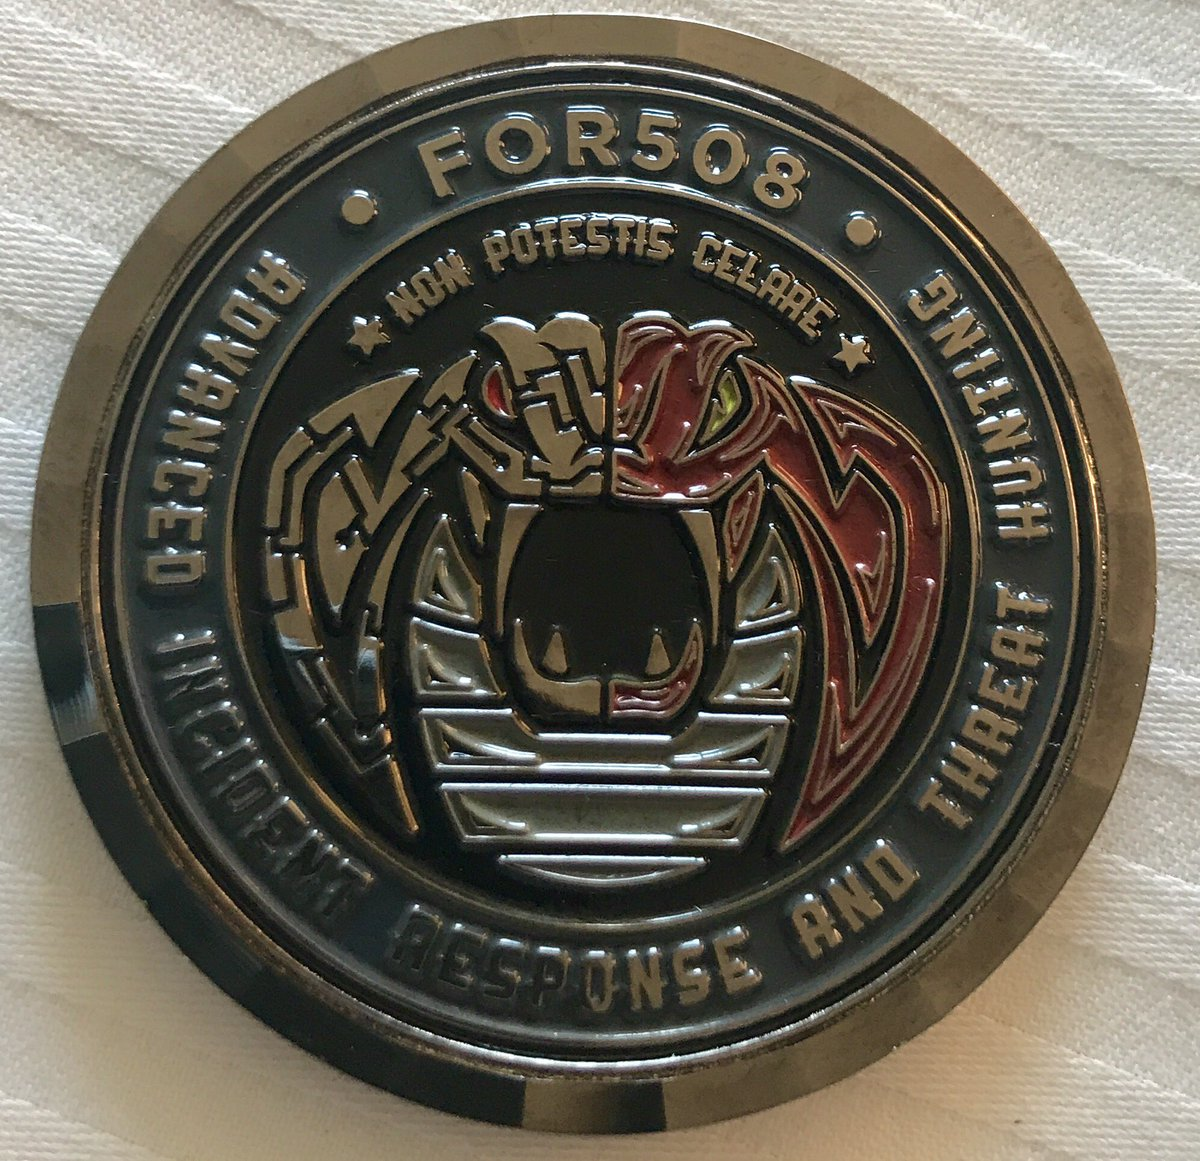 Brand new #FOR508 challenge coins to debut at #DFIRSummit THIS WEEK! https://t.co/mlOkcOGLTR